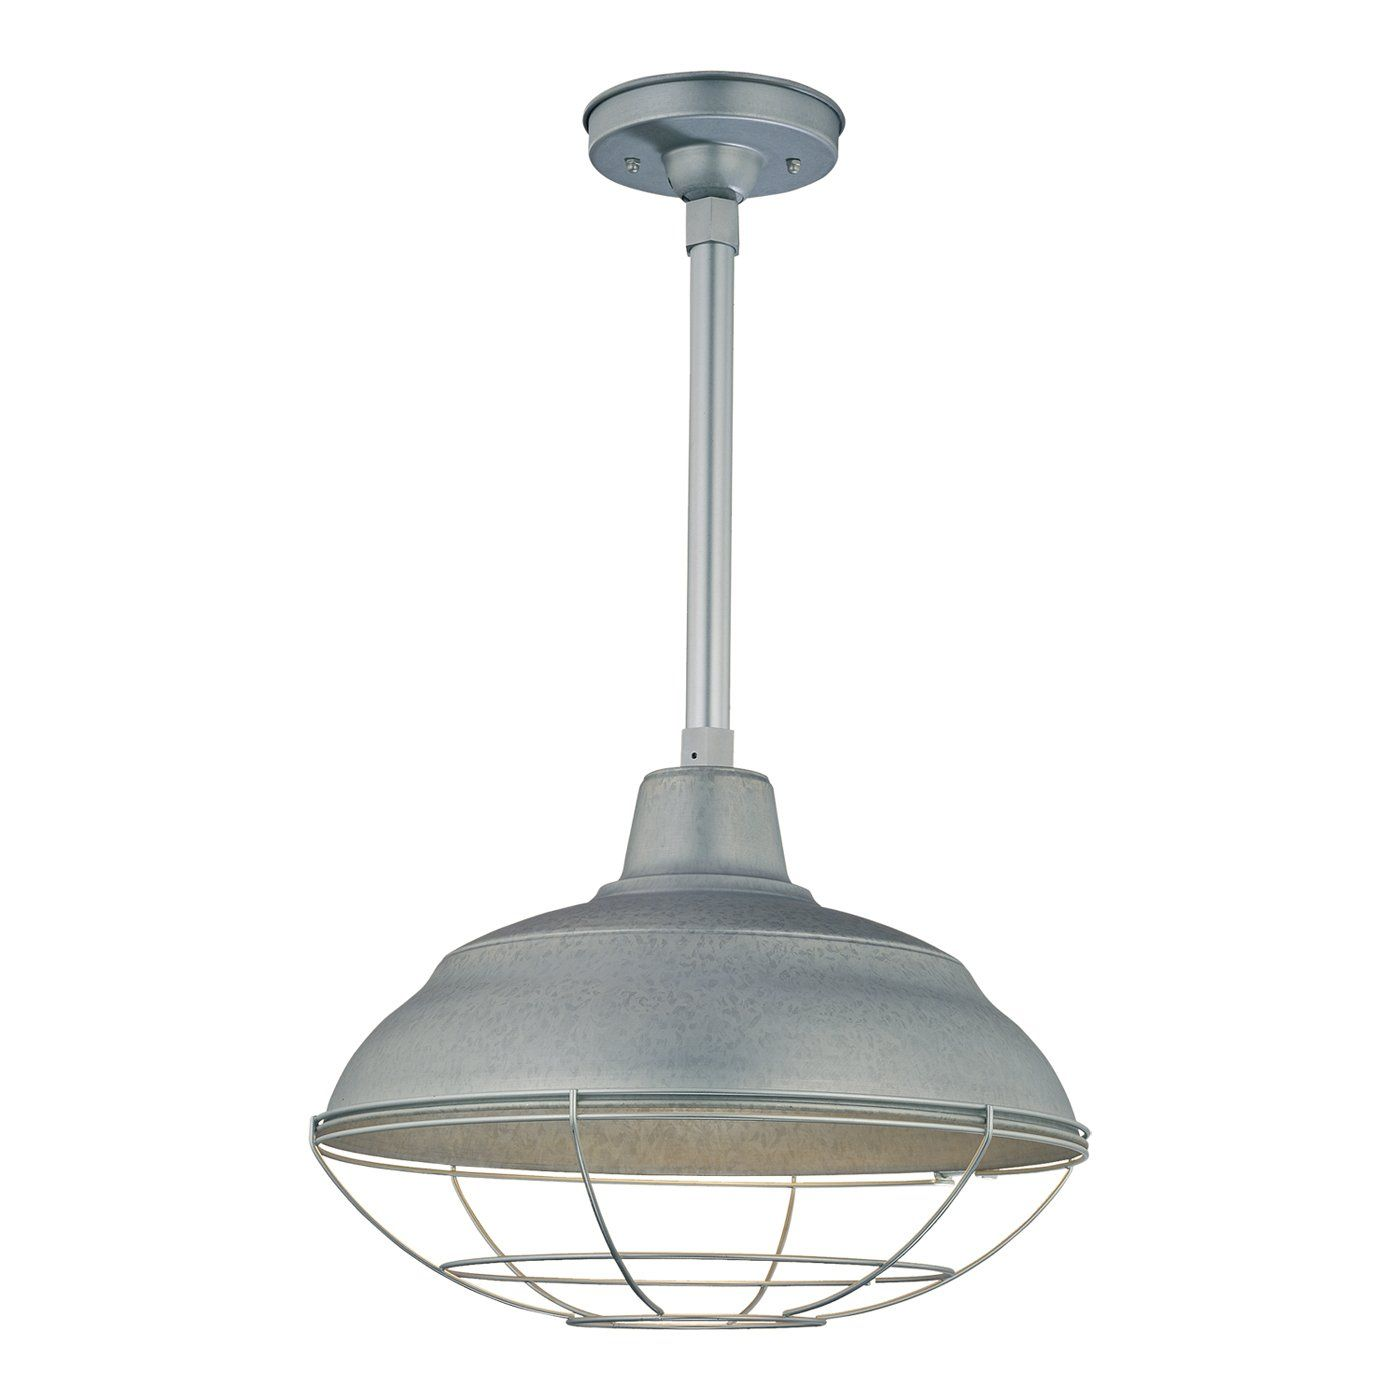 Millennium Lighting RWHS1 R Series Warehouse Shade RLM Pendant - Lighting Universe (1) 200 watt incand.